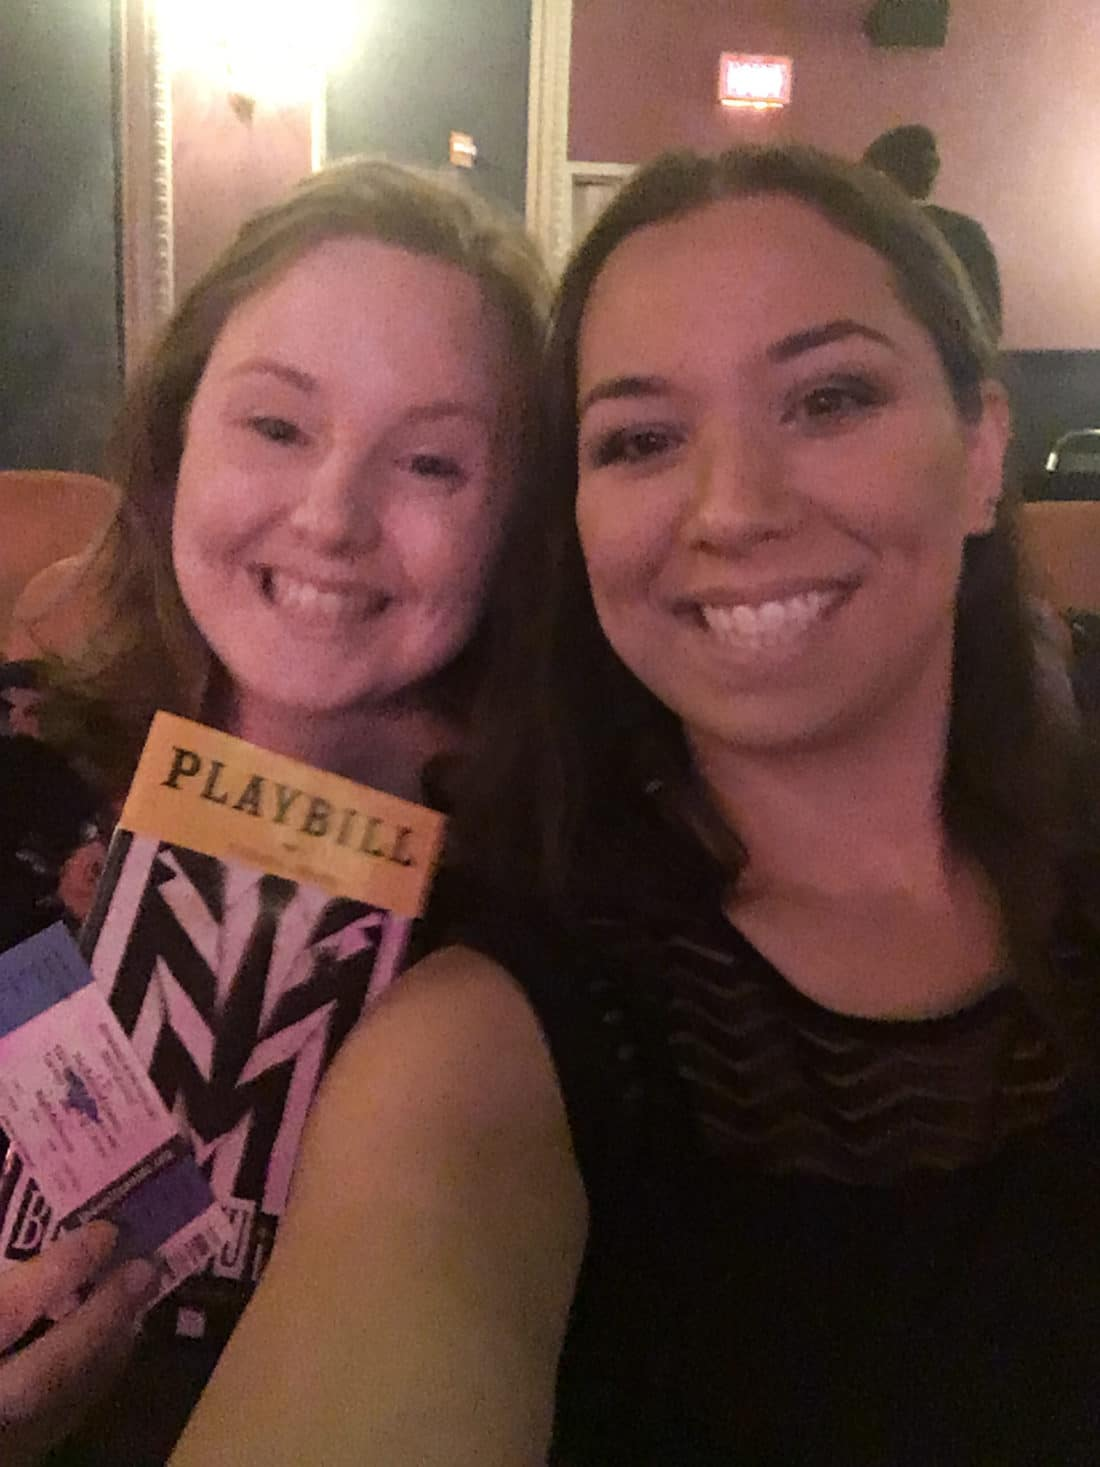 Beetlejuice The Musical Jay and Danielle. Beetlejuice The Musical will be showing at the National Theater in DC Now till Nov 18, 2018. Follow this Raunchy humorous musical as you explore the world of Beetlejuice even deeper than the previous movie showed.